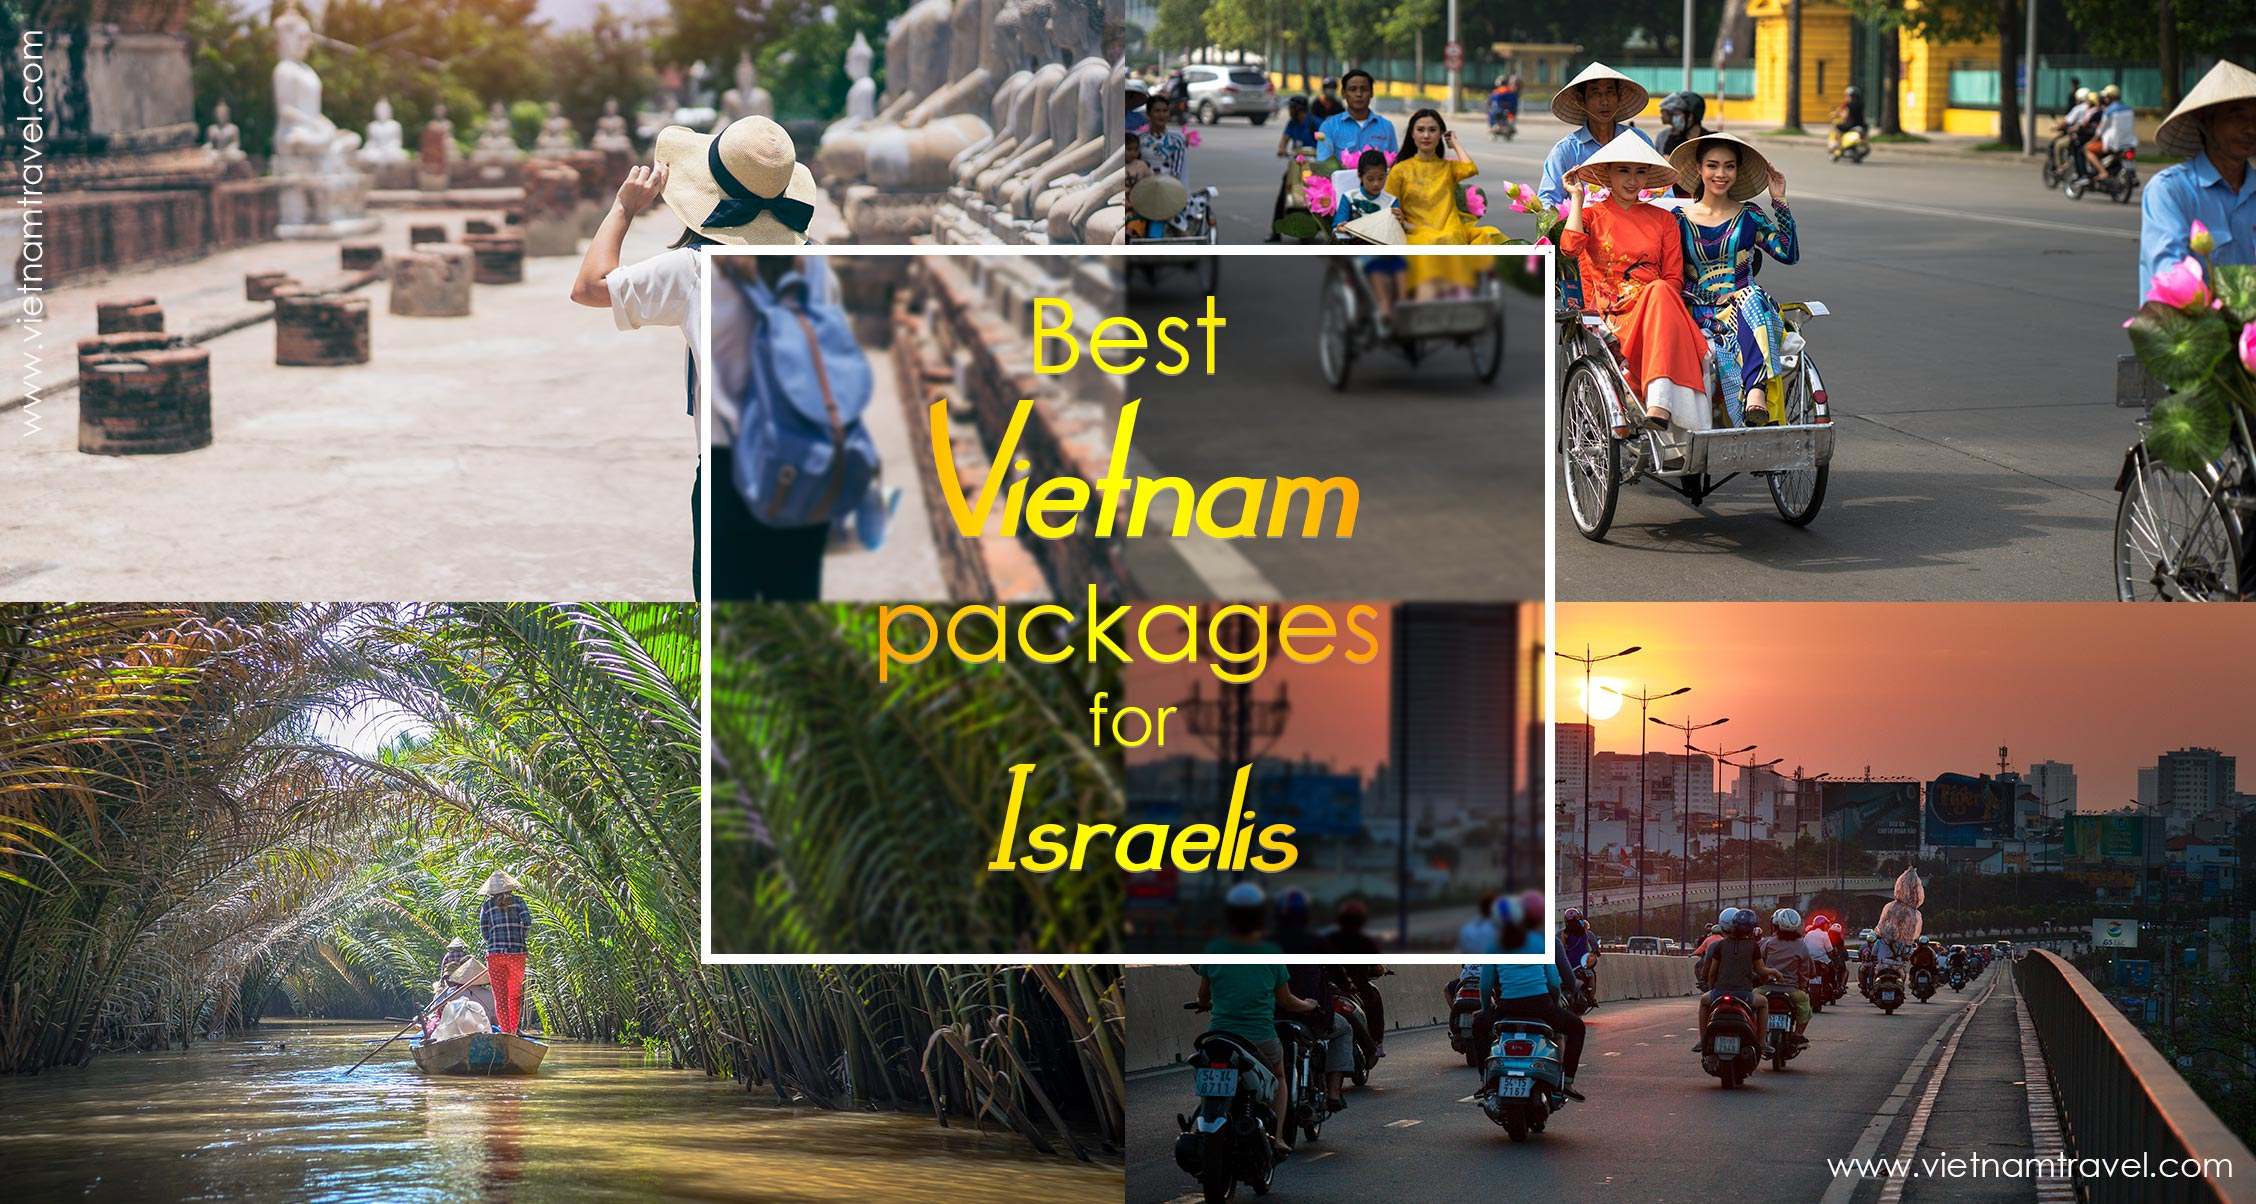 Best Vietnam packages for Israelis